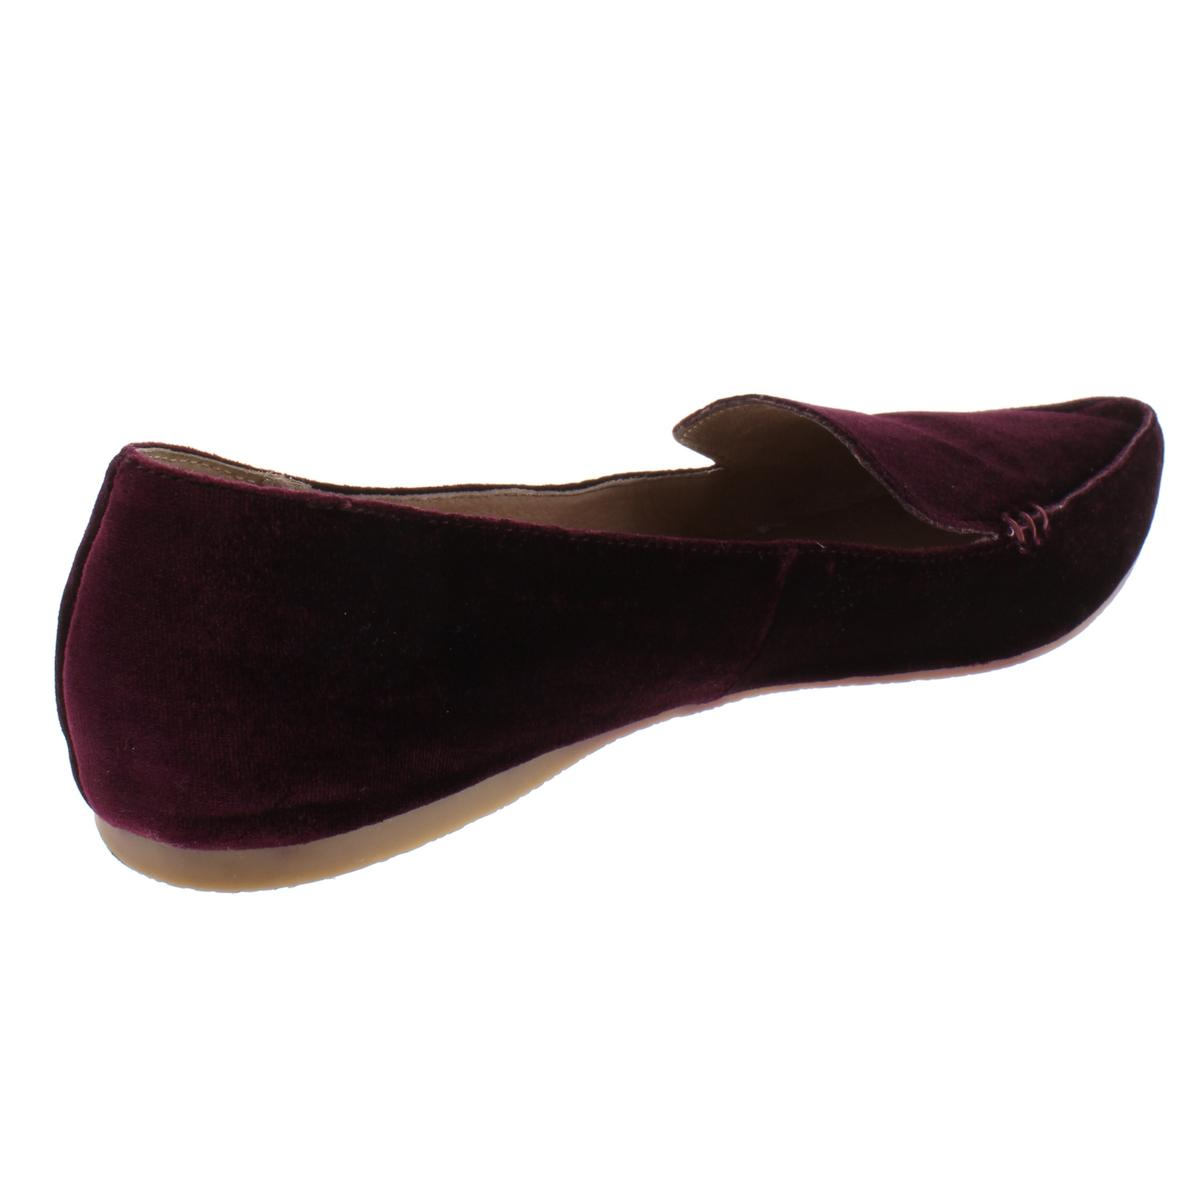 Steve-Madden-Womens-Feather-Dress-Loafers-Shoes-BHFO-7353 thumbnail 8